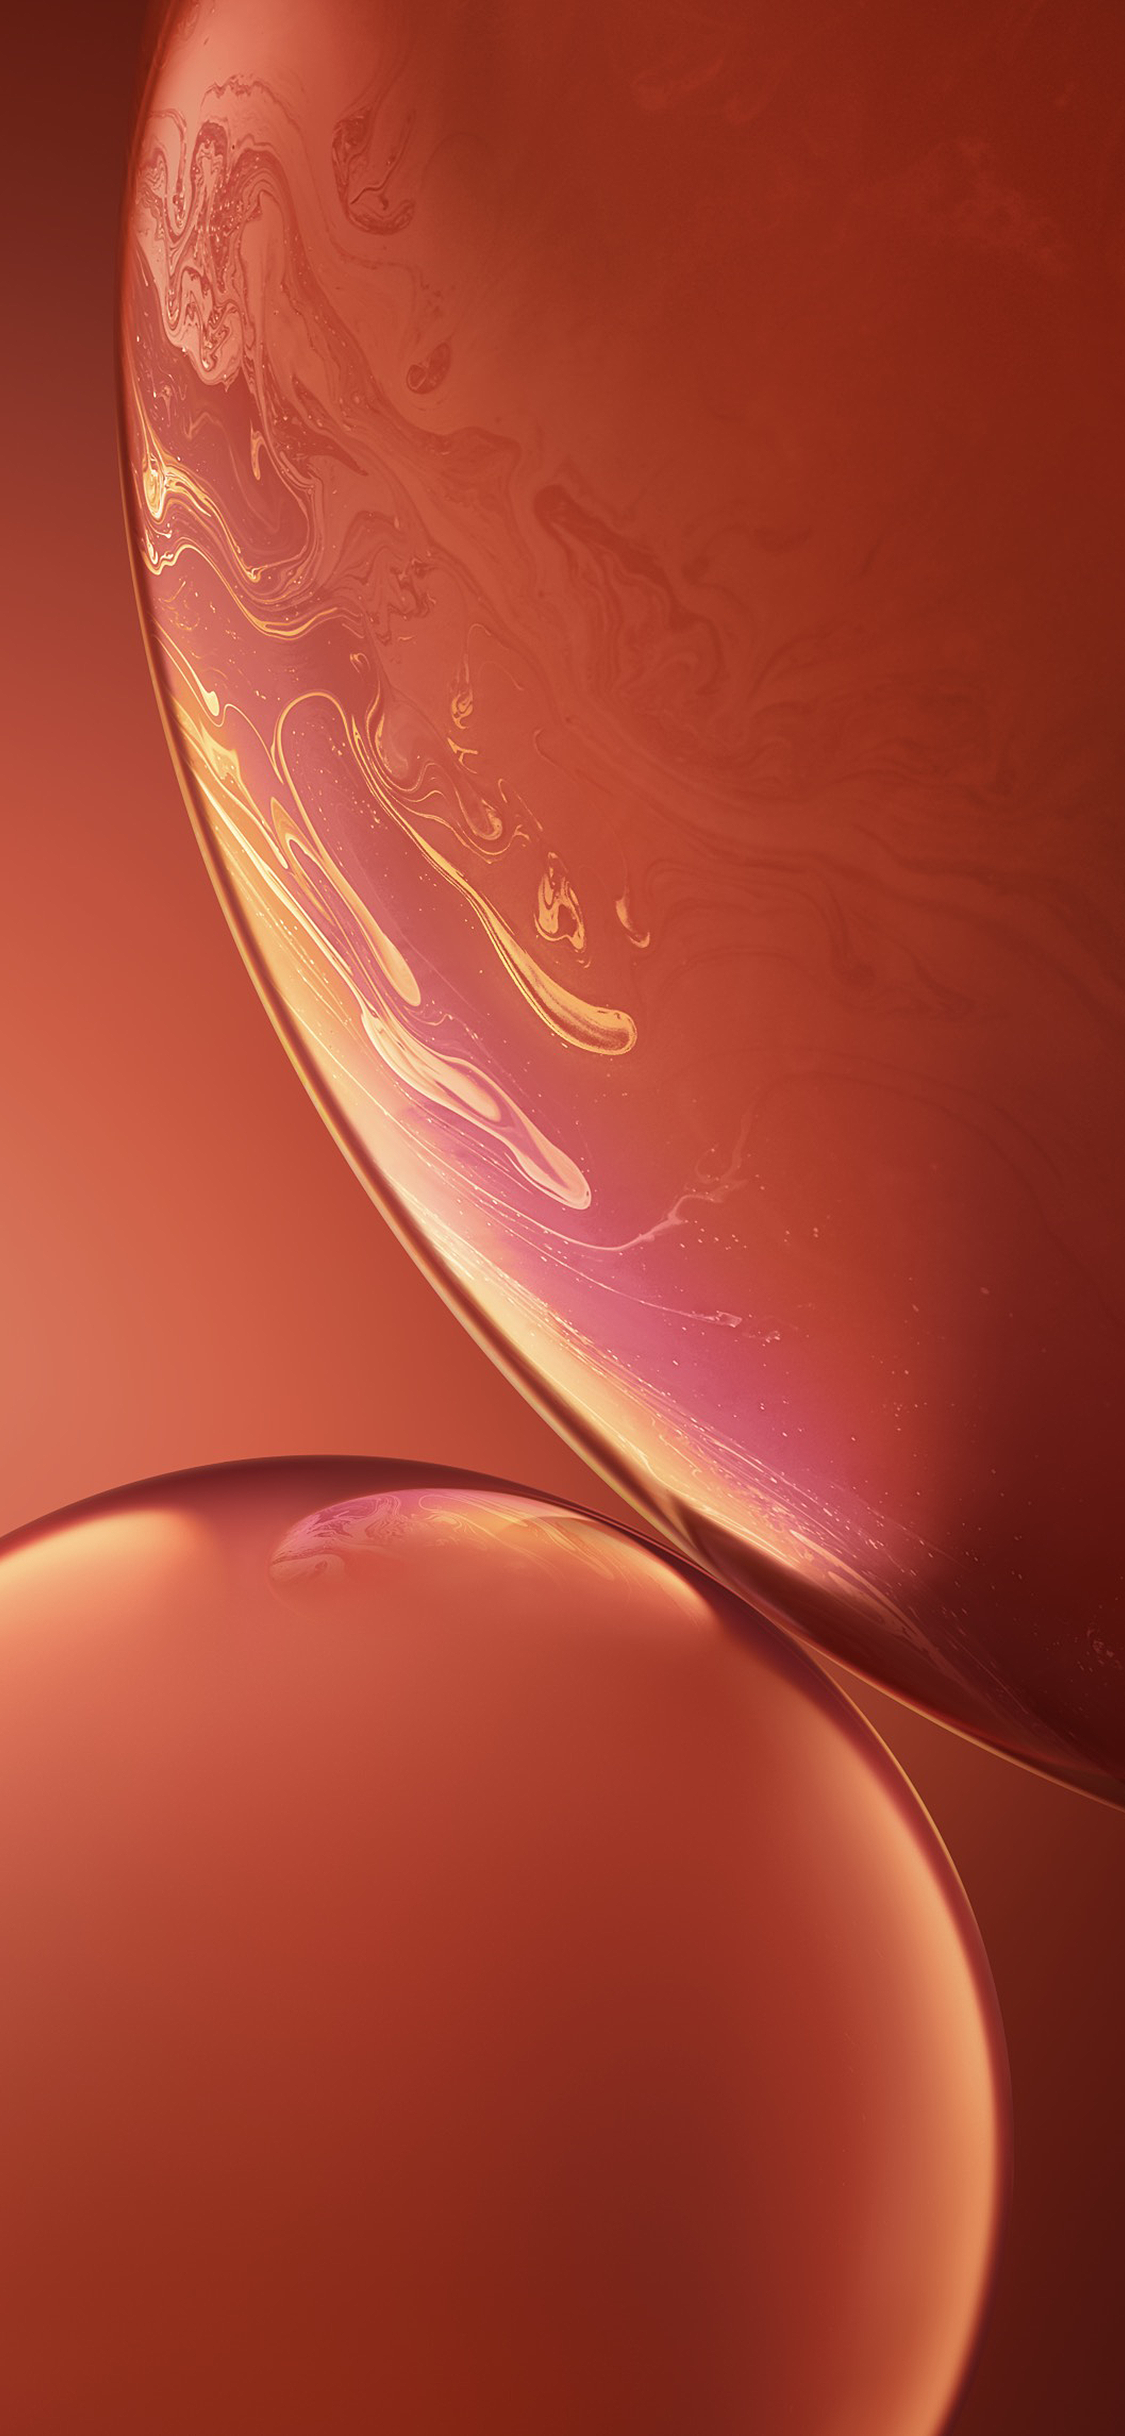 iPhone XR Stock Wallpaper - Coral